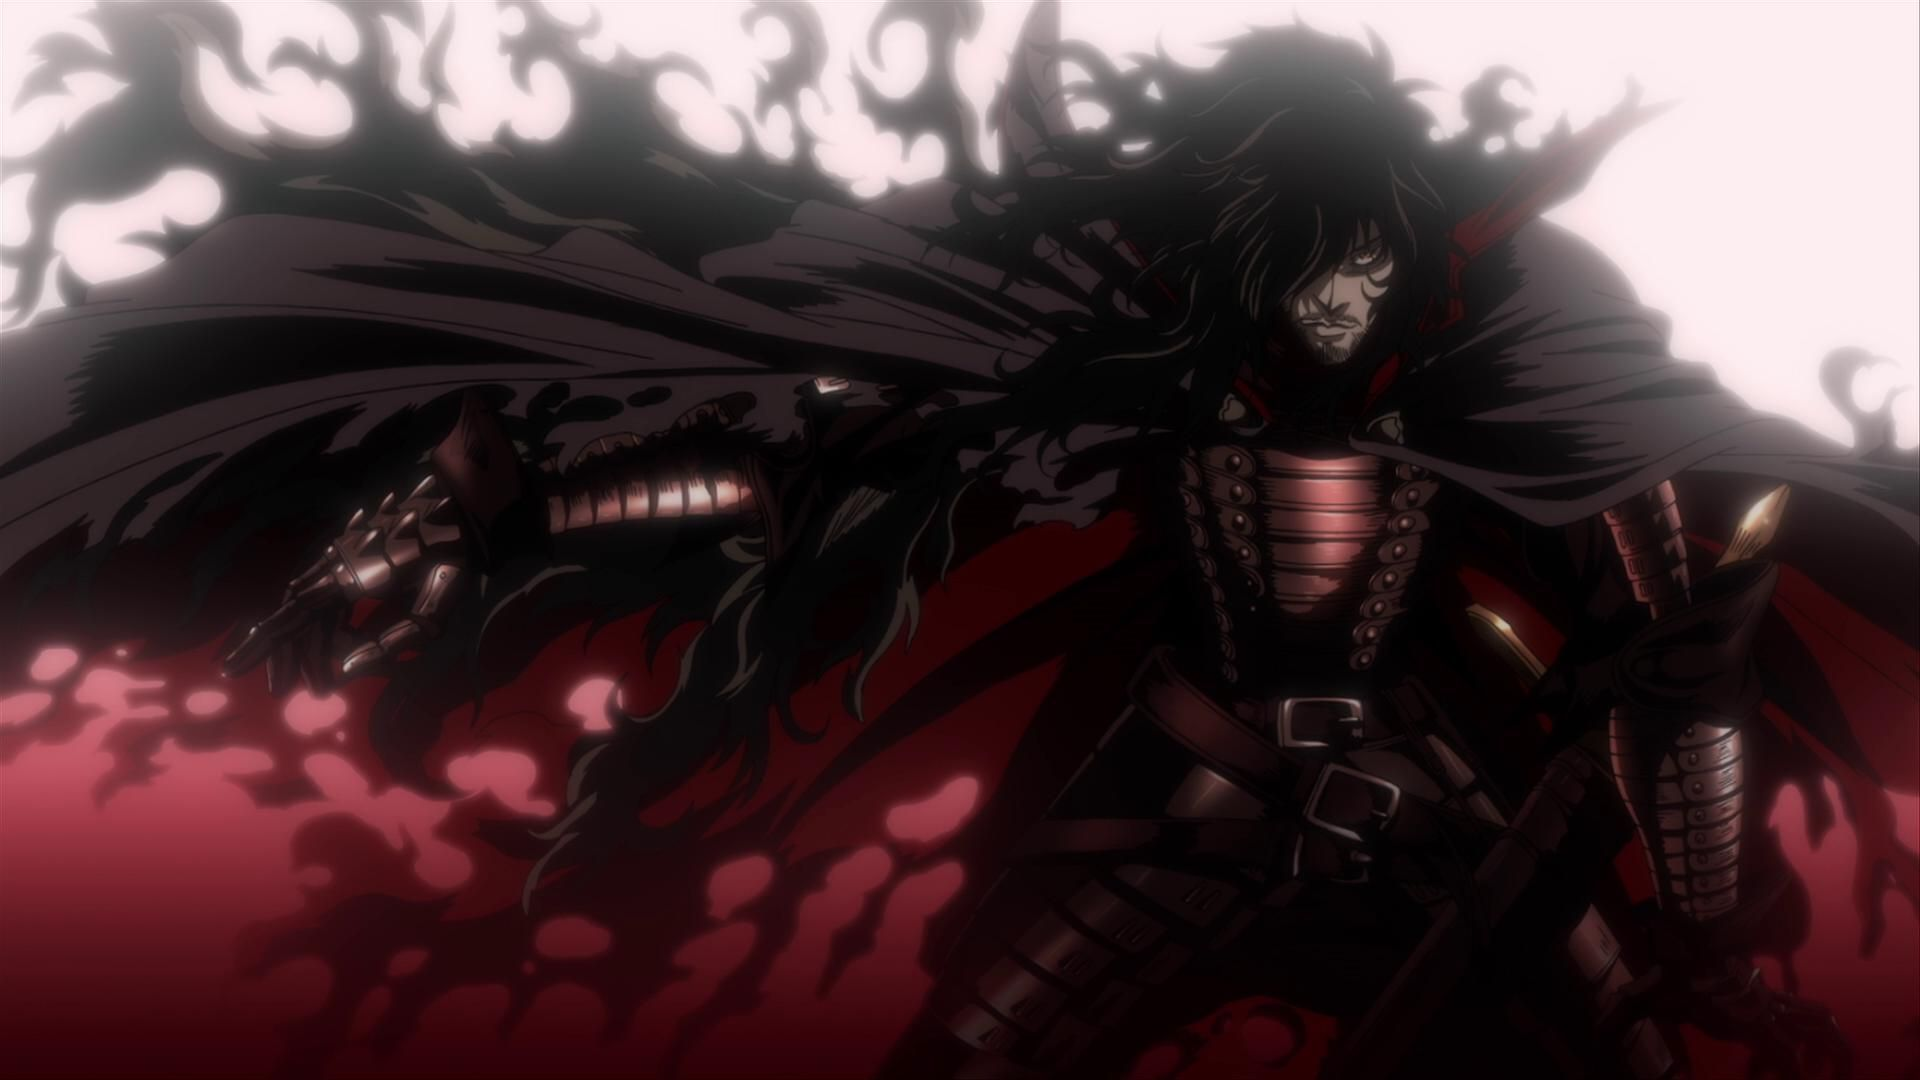 Alucard Vampire Hellsing Ultimate Wallpaper